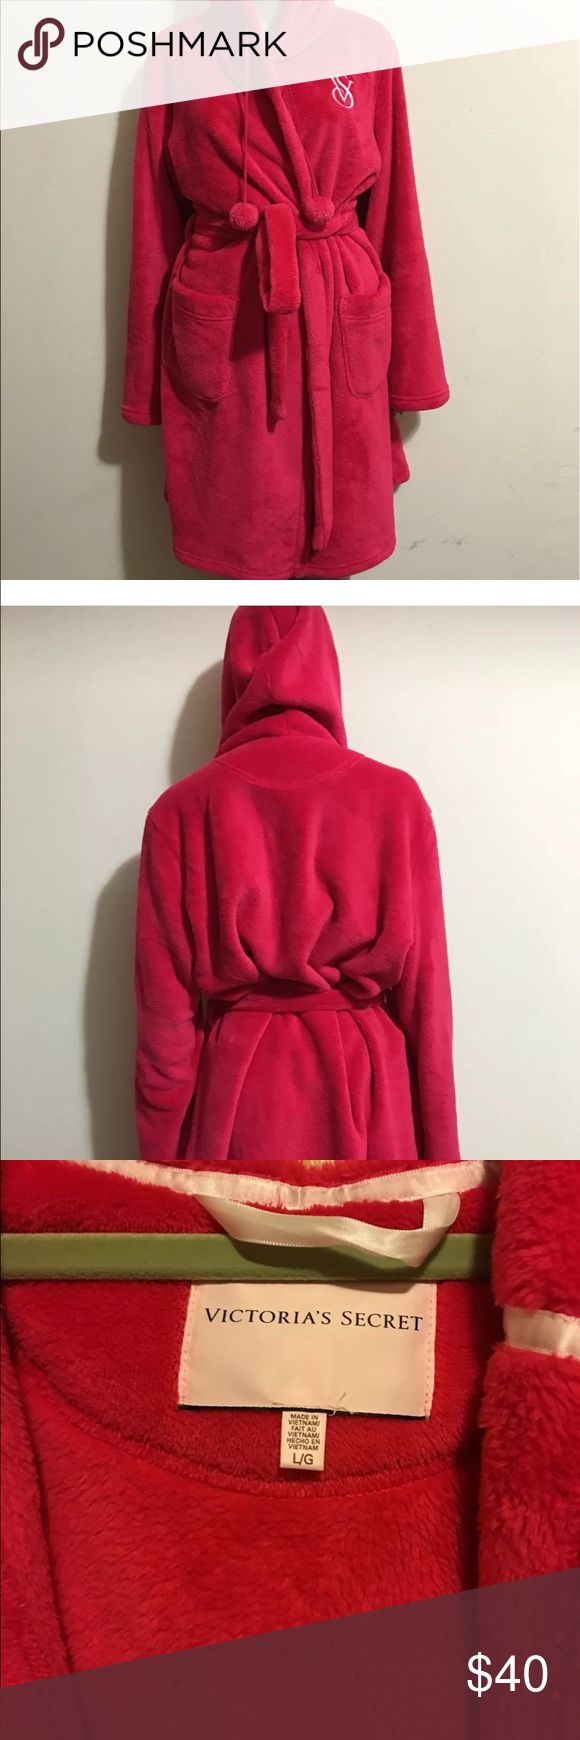 Victoria's Secret Hooded Cozy Short Robe Size L Beautiful very warm short robe. New without tag. Victoria's Secret Intimates & Sleepwear Robes